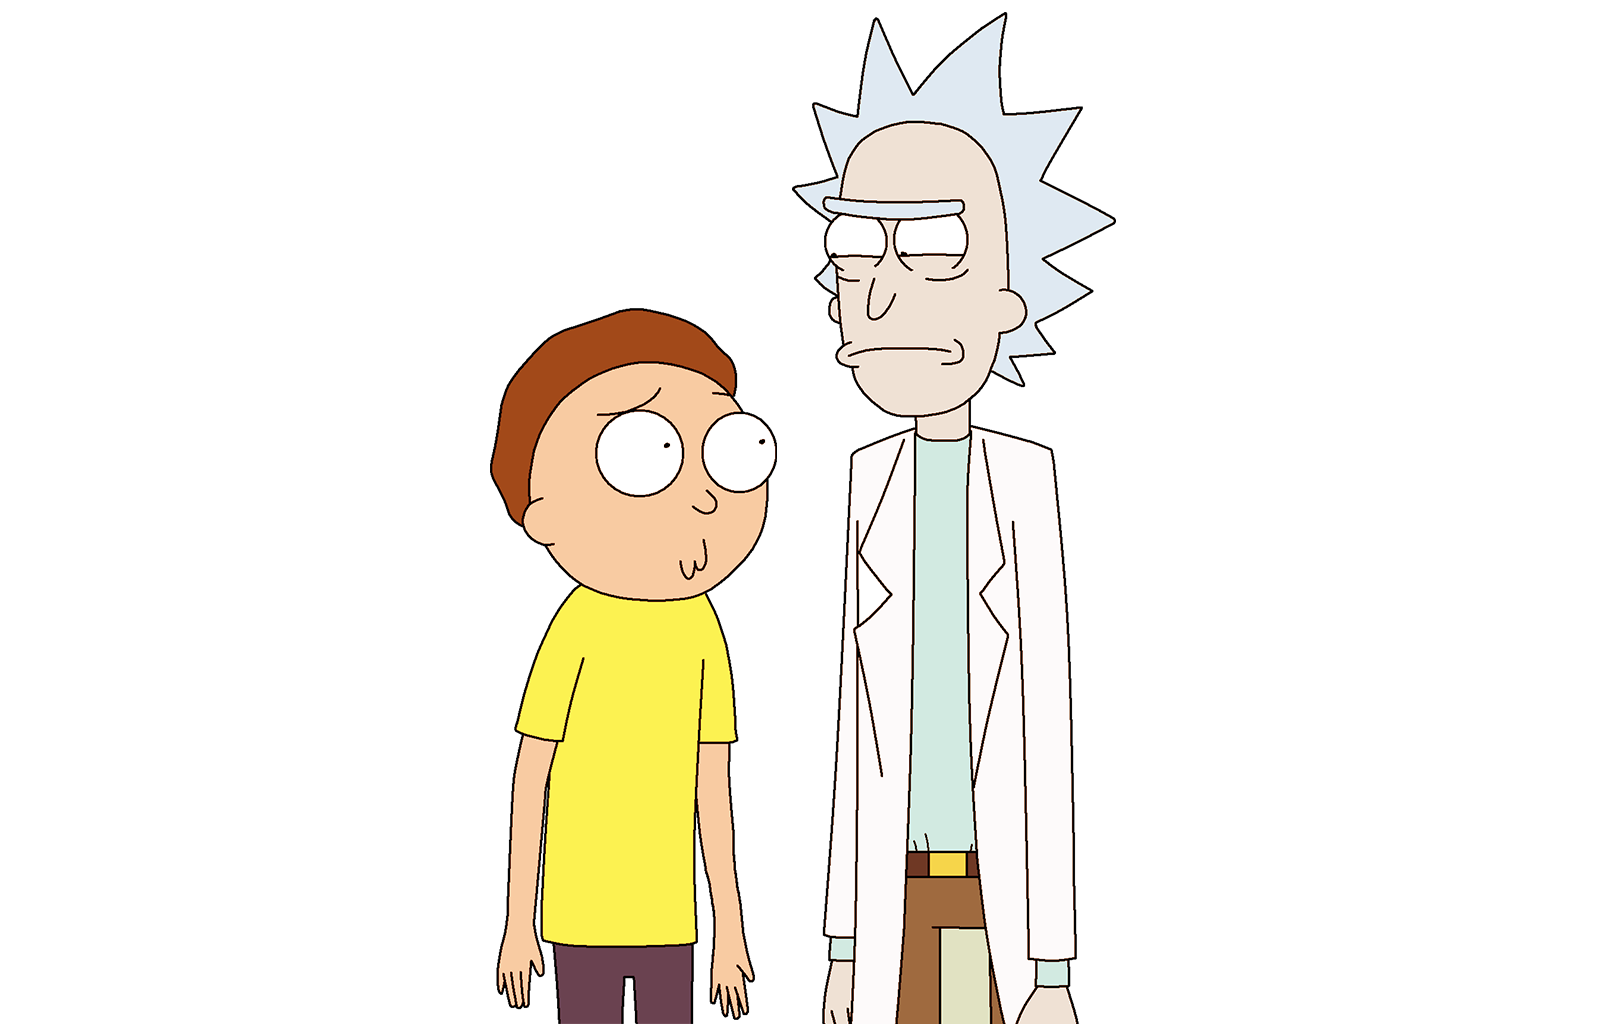 Rick and morty screaming sun png. Fandom